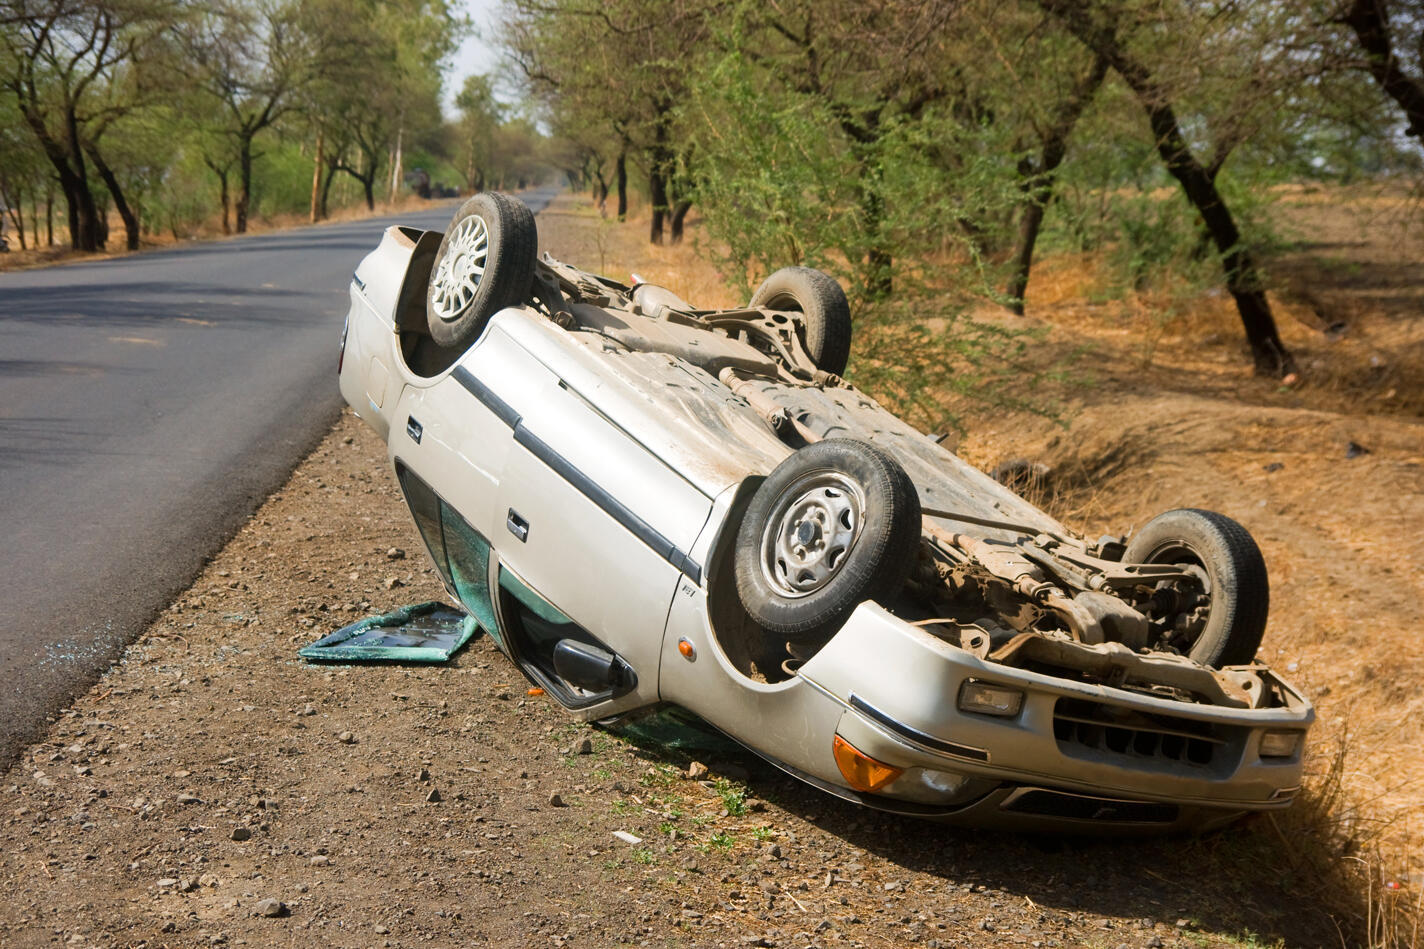 Deaths from traffice accidents soared between 2014 and 2016